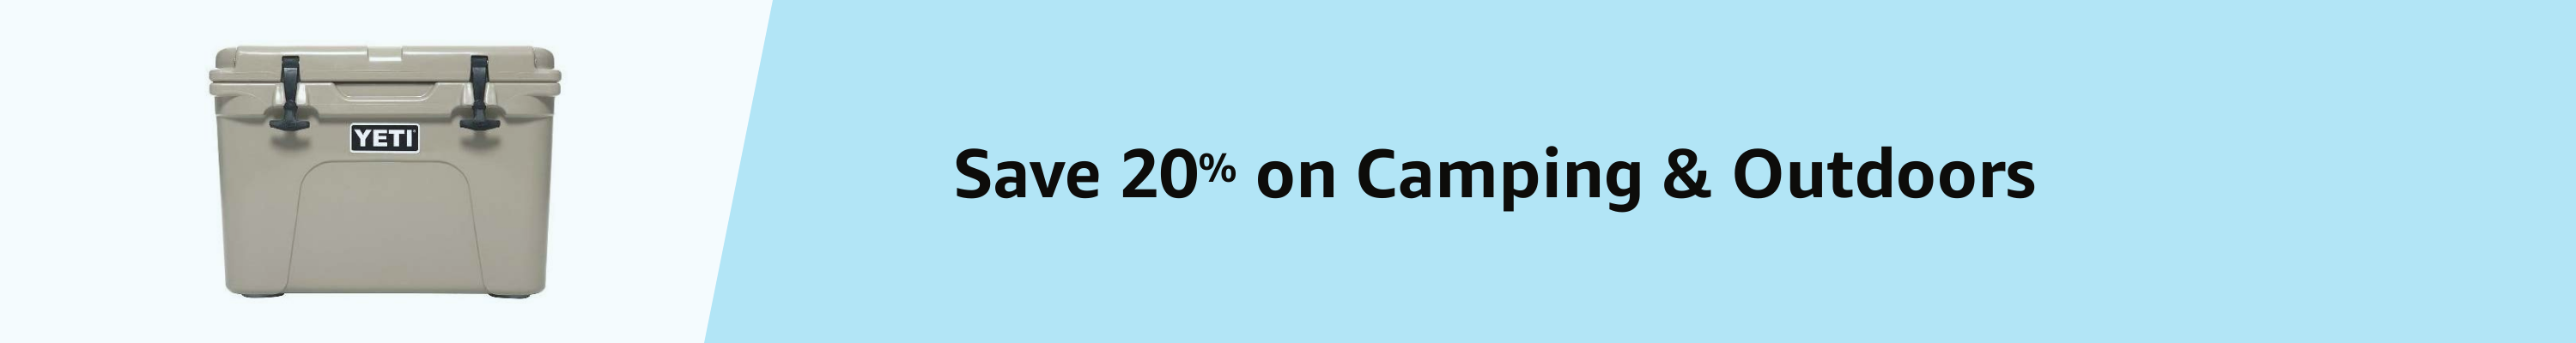 Amazon Warehouse Prime Day 20% Camping & Outdoors